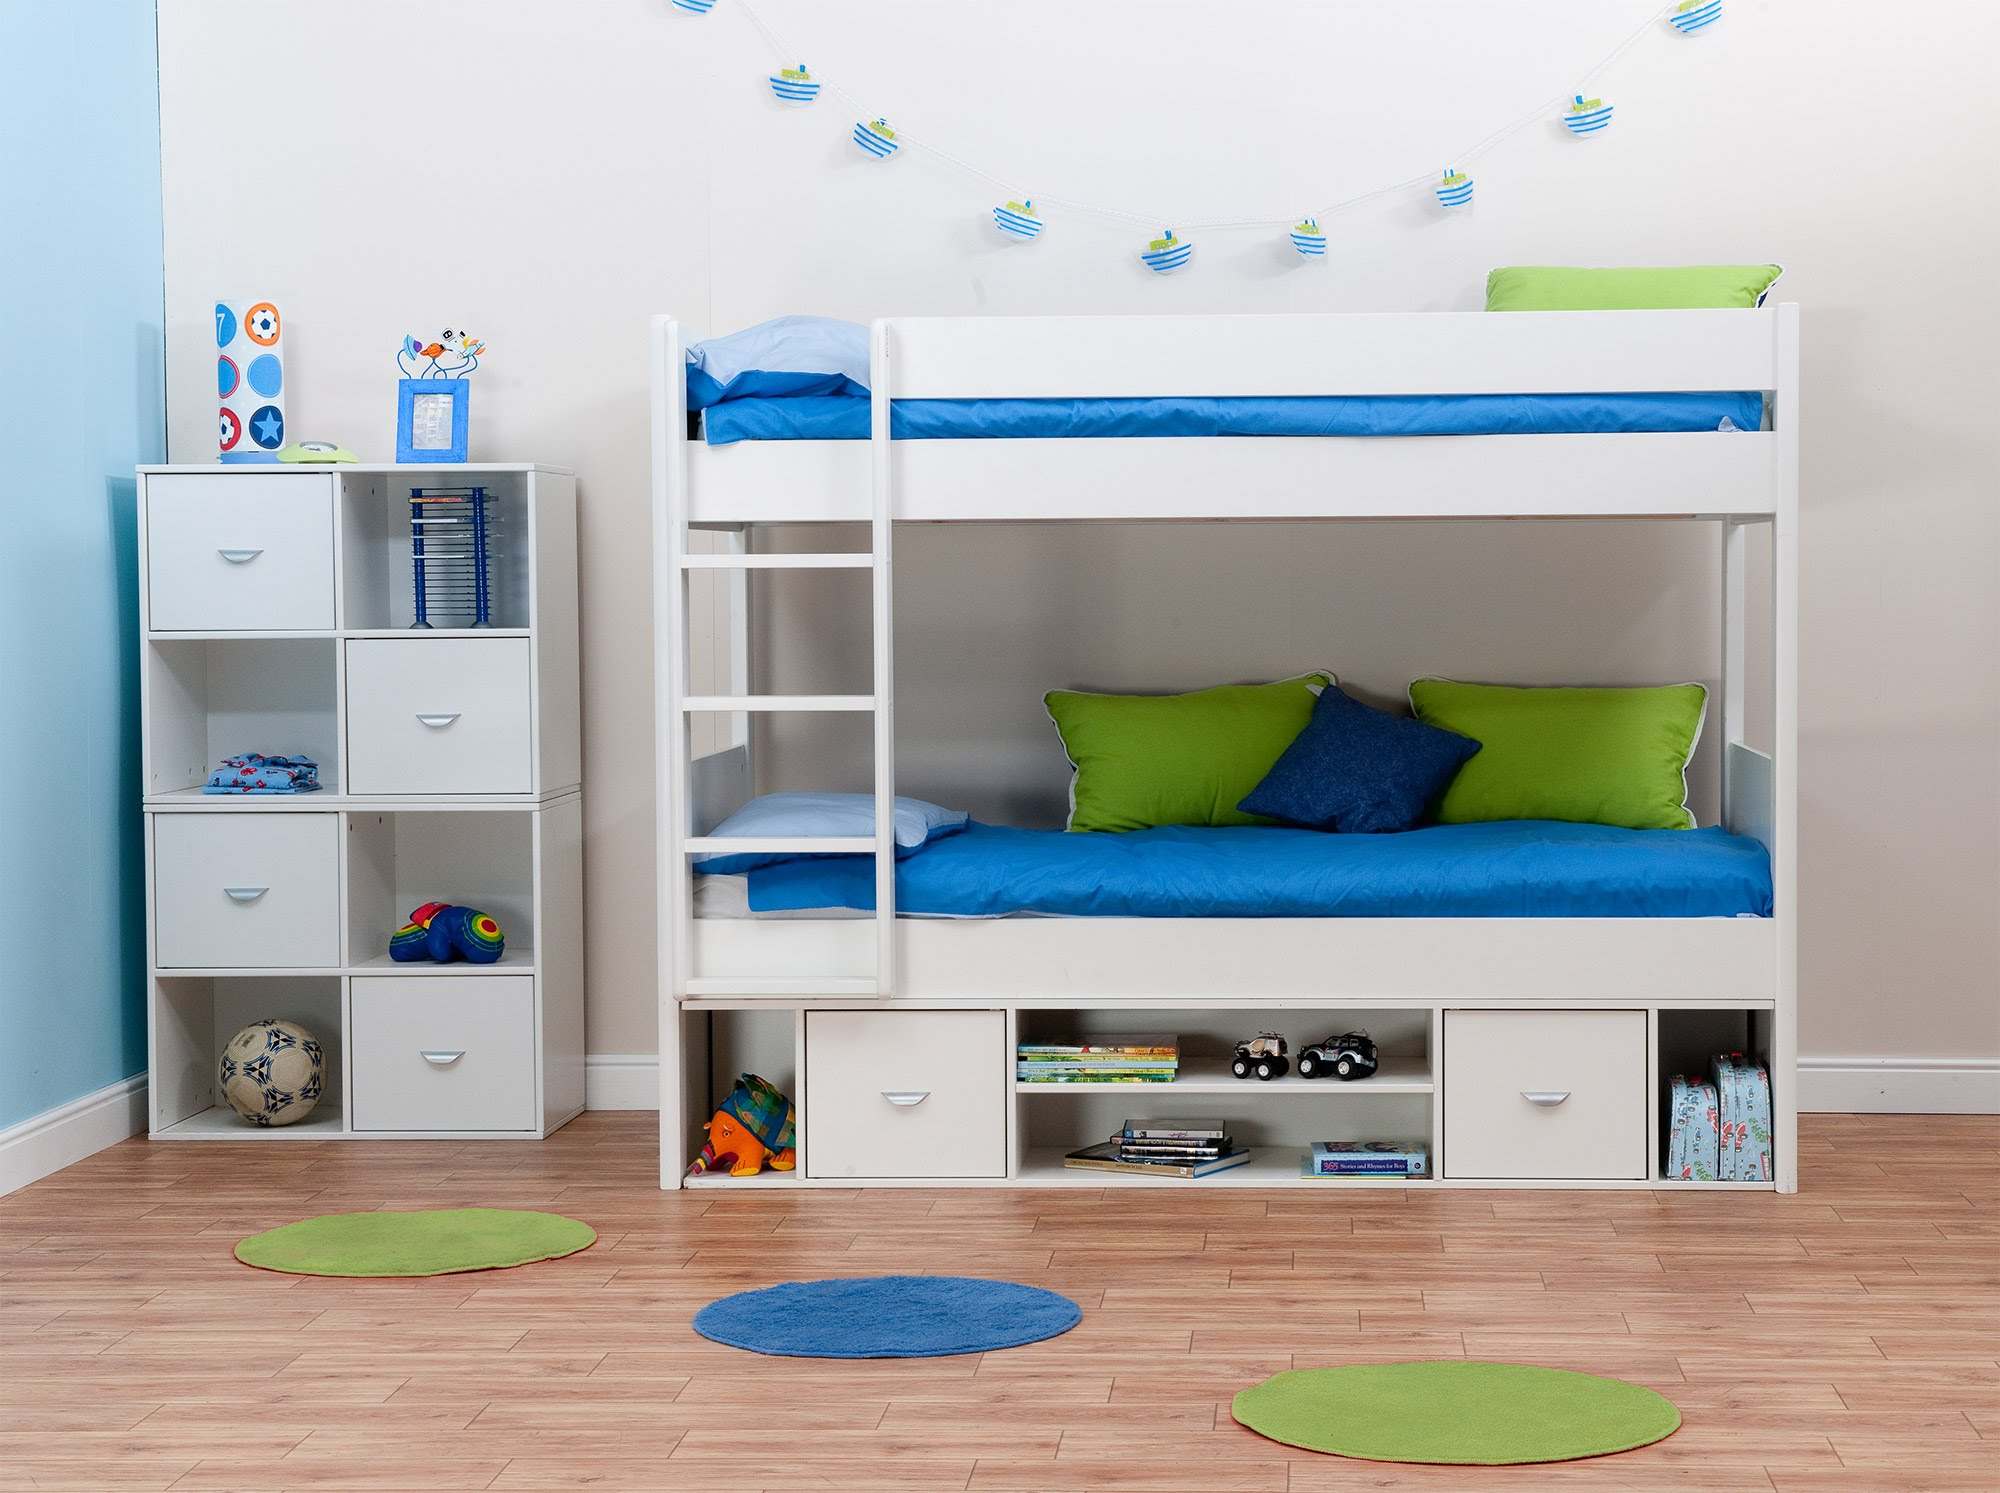 Loft Bed For Teenager | Built In Bunk Beds For Small Rooms | Bunk Beds For Small Rooms